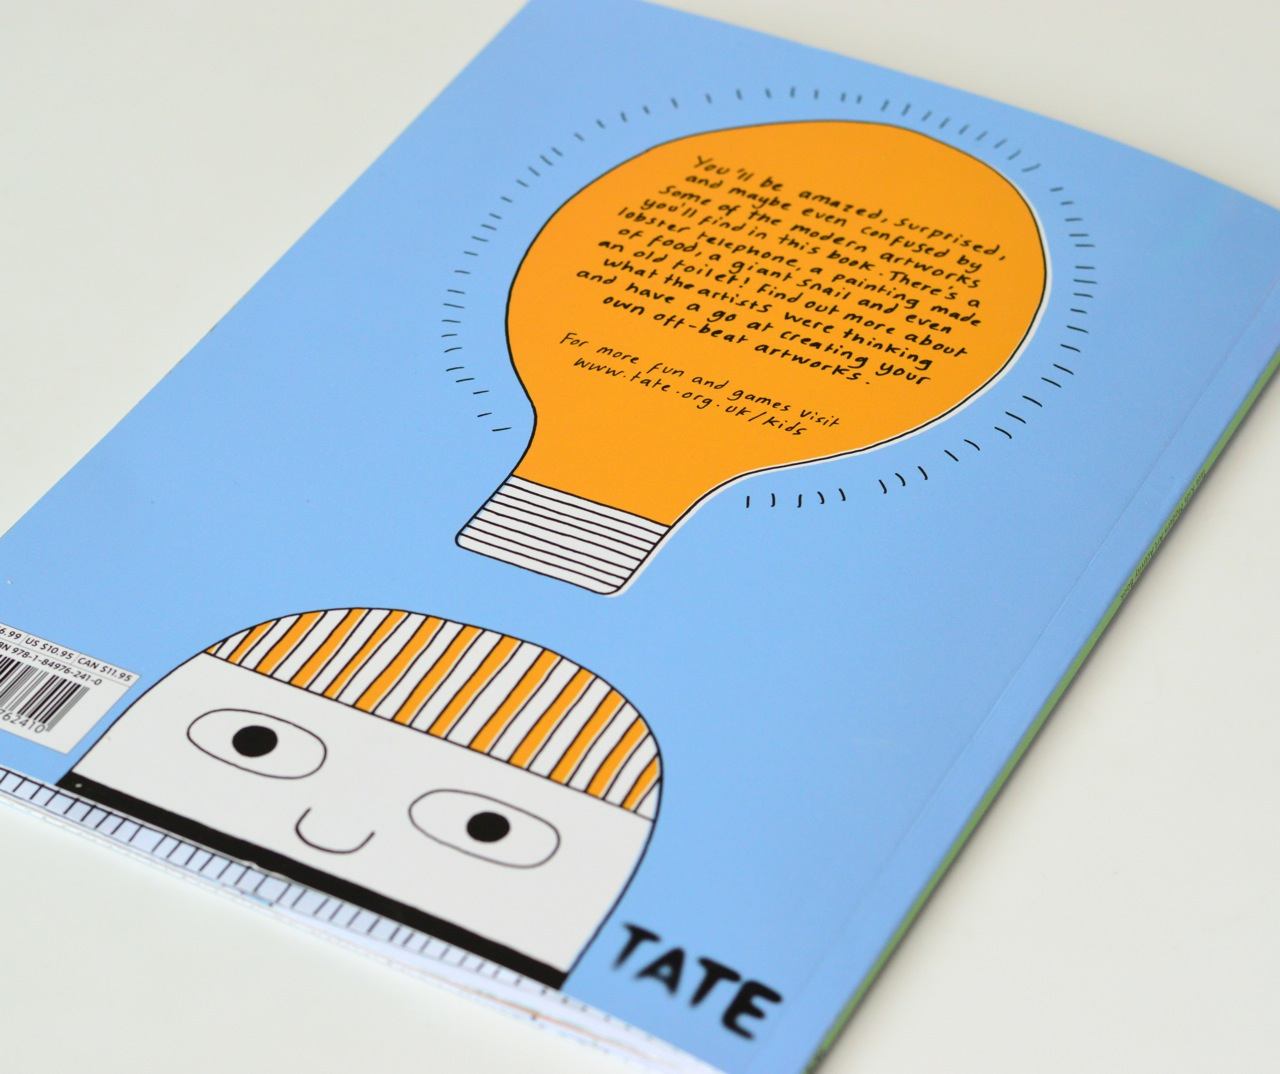 tate gallery books for kids